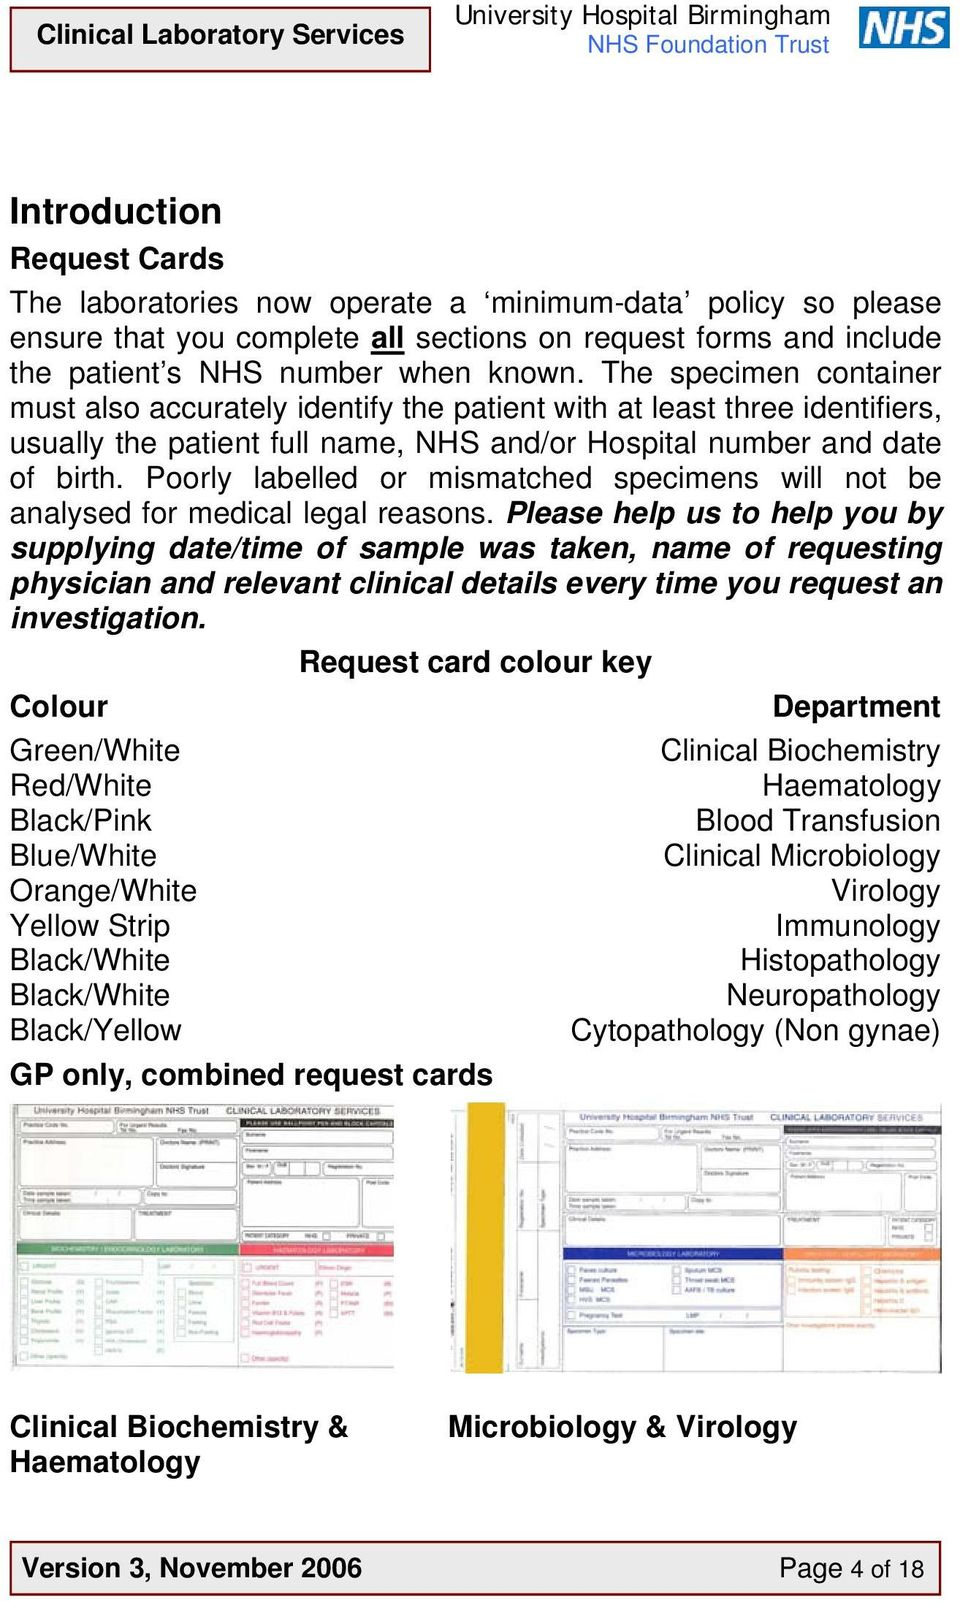 Guide  to Specimen Containers for Pathology Requests